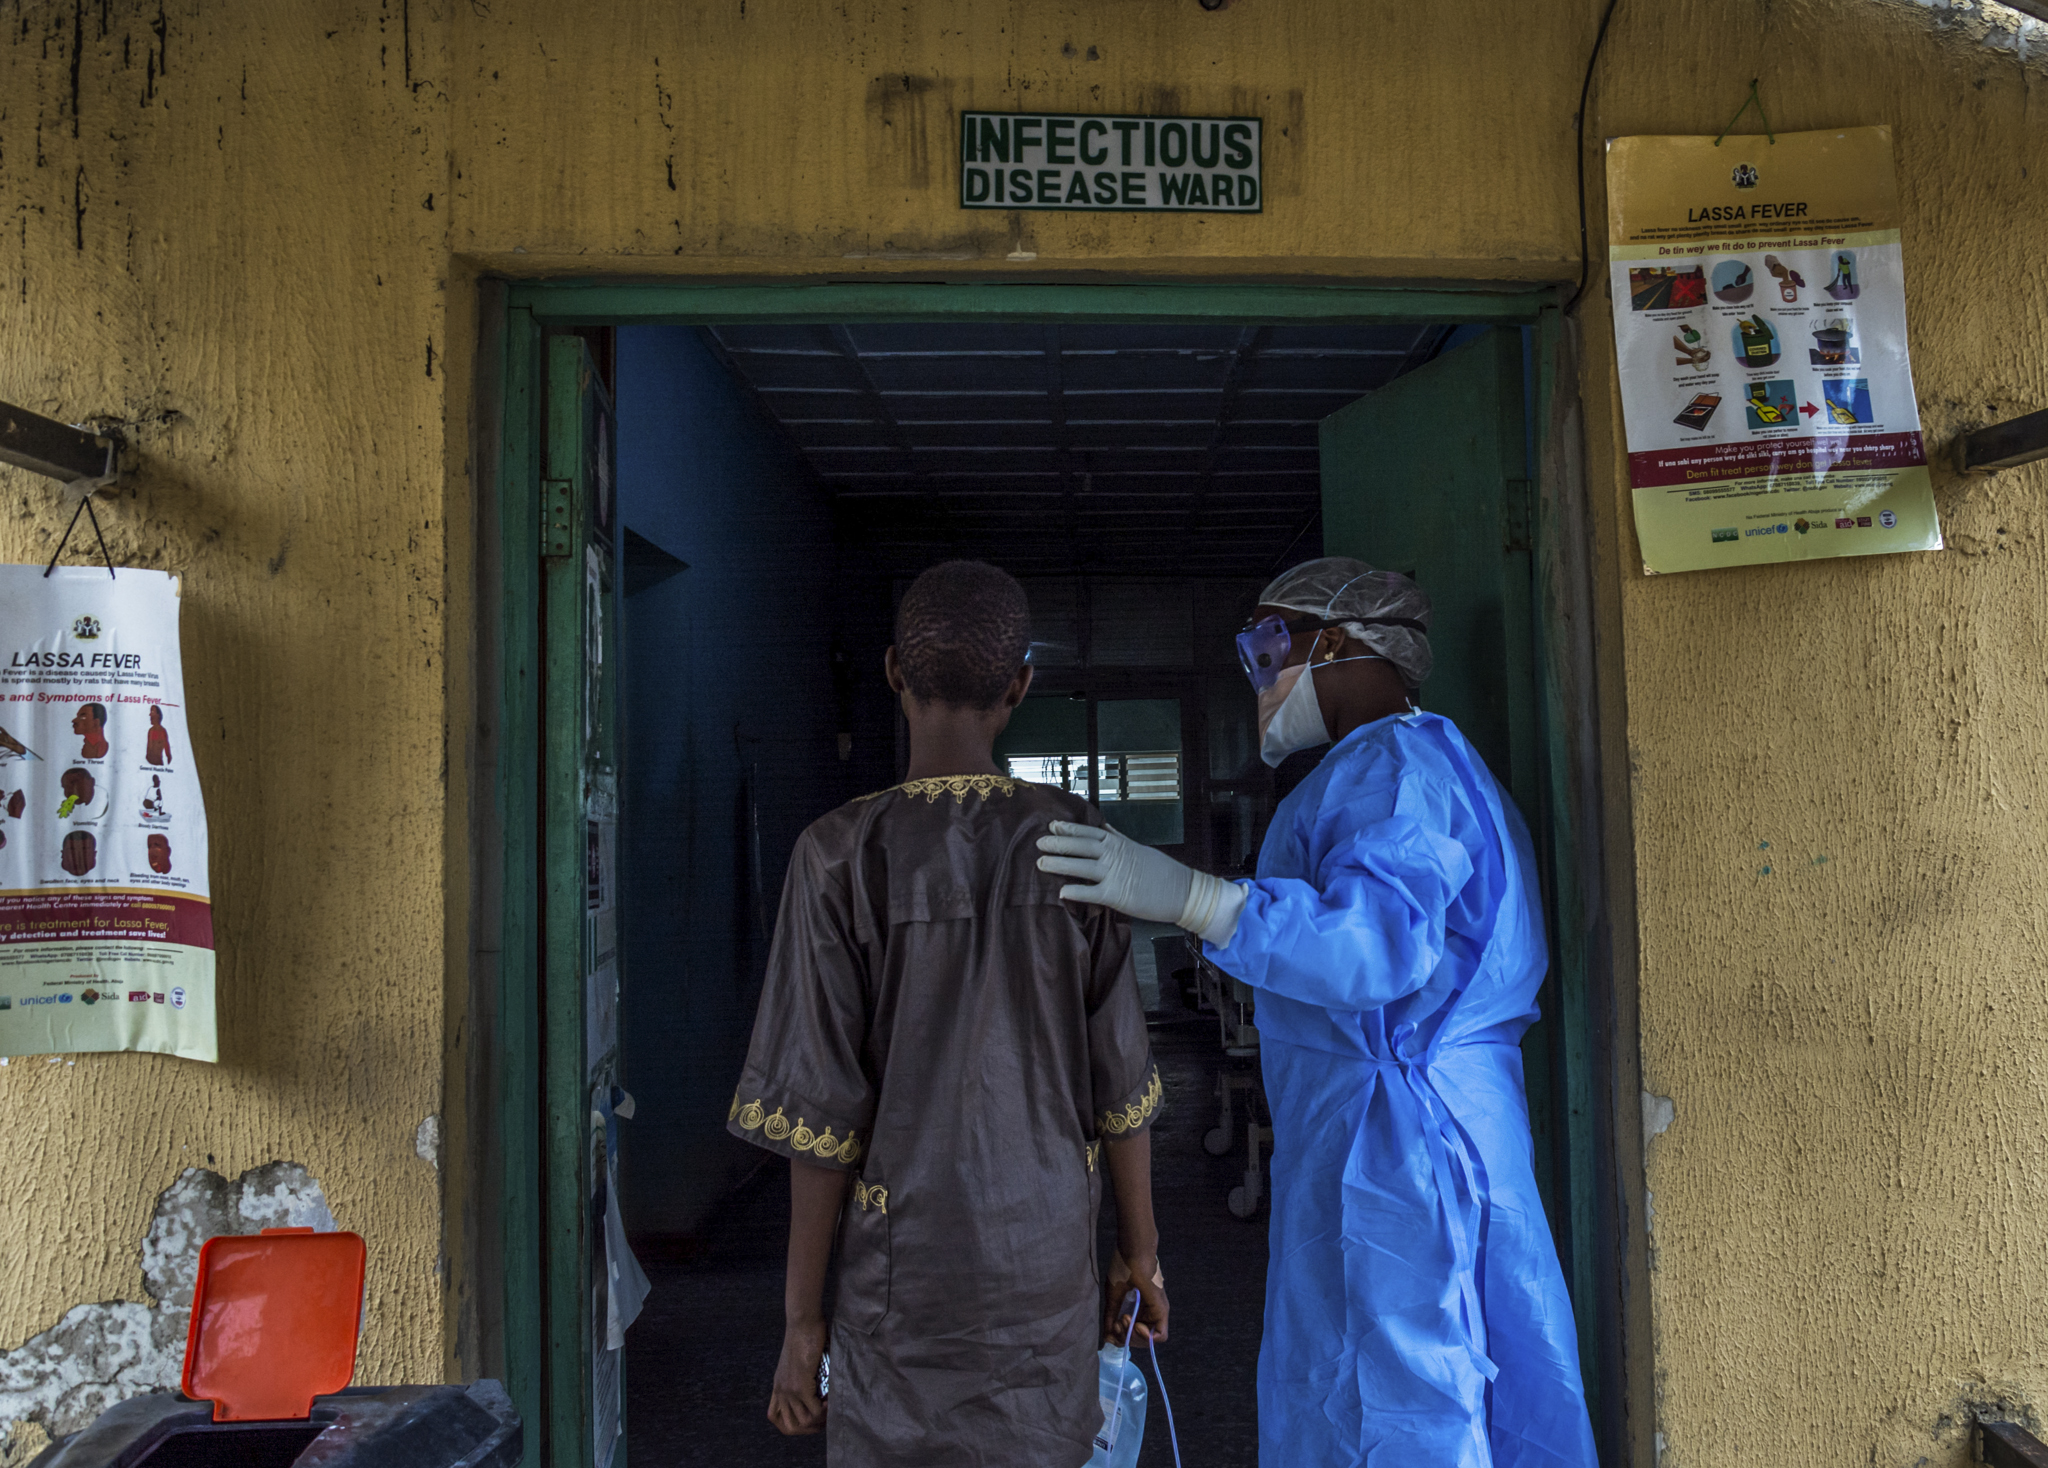 ETINOSA YVONNE  www.etinosayvonne.me  |  @etinosa.yvonne   A nurse accompanies a patient suspected to have Lassa fever to the isolation ward at the Federal Medical Center in Owo, Ondo state, in March 2018. During the first quarter of 2018, Nigeria experienced the worst outbreak of Lassa fever in 49 years. The outbreak led to the death of over a 100 people in different parts of the country.